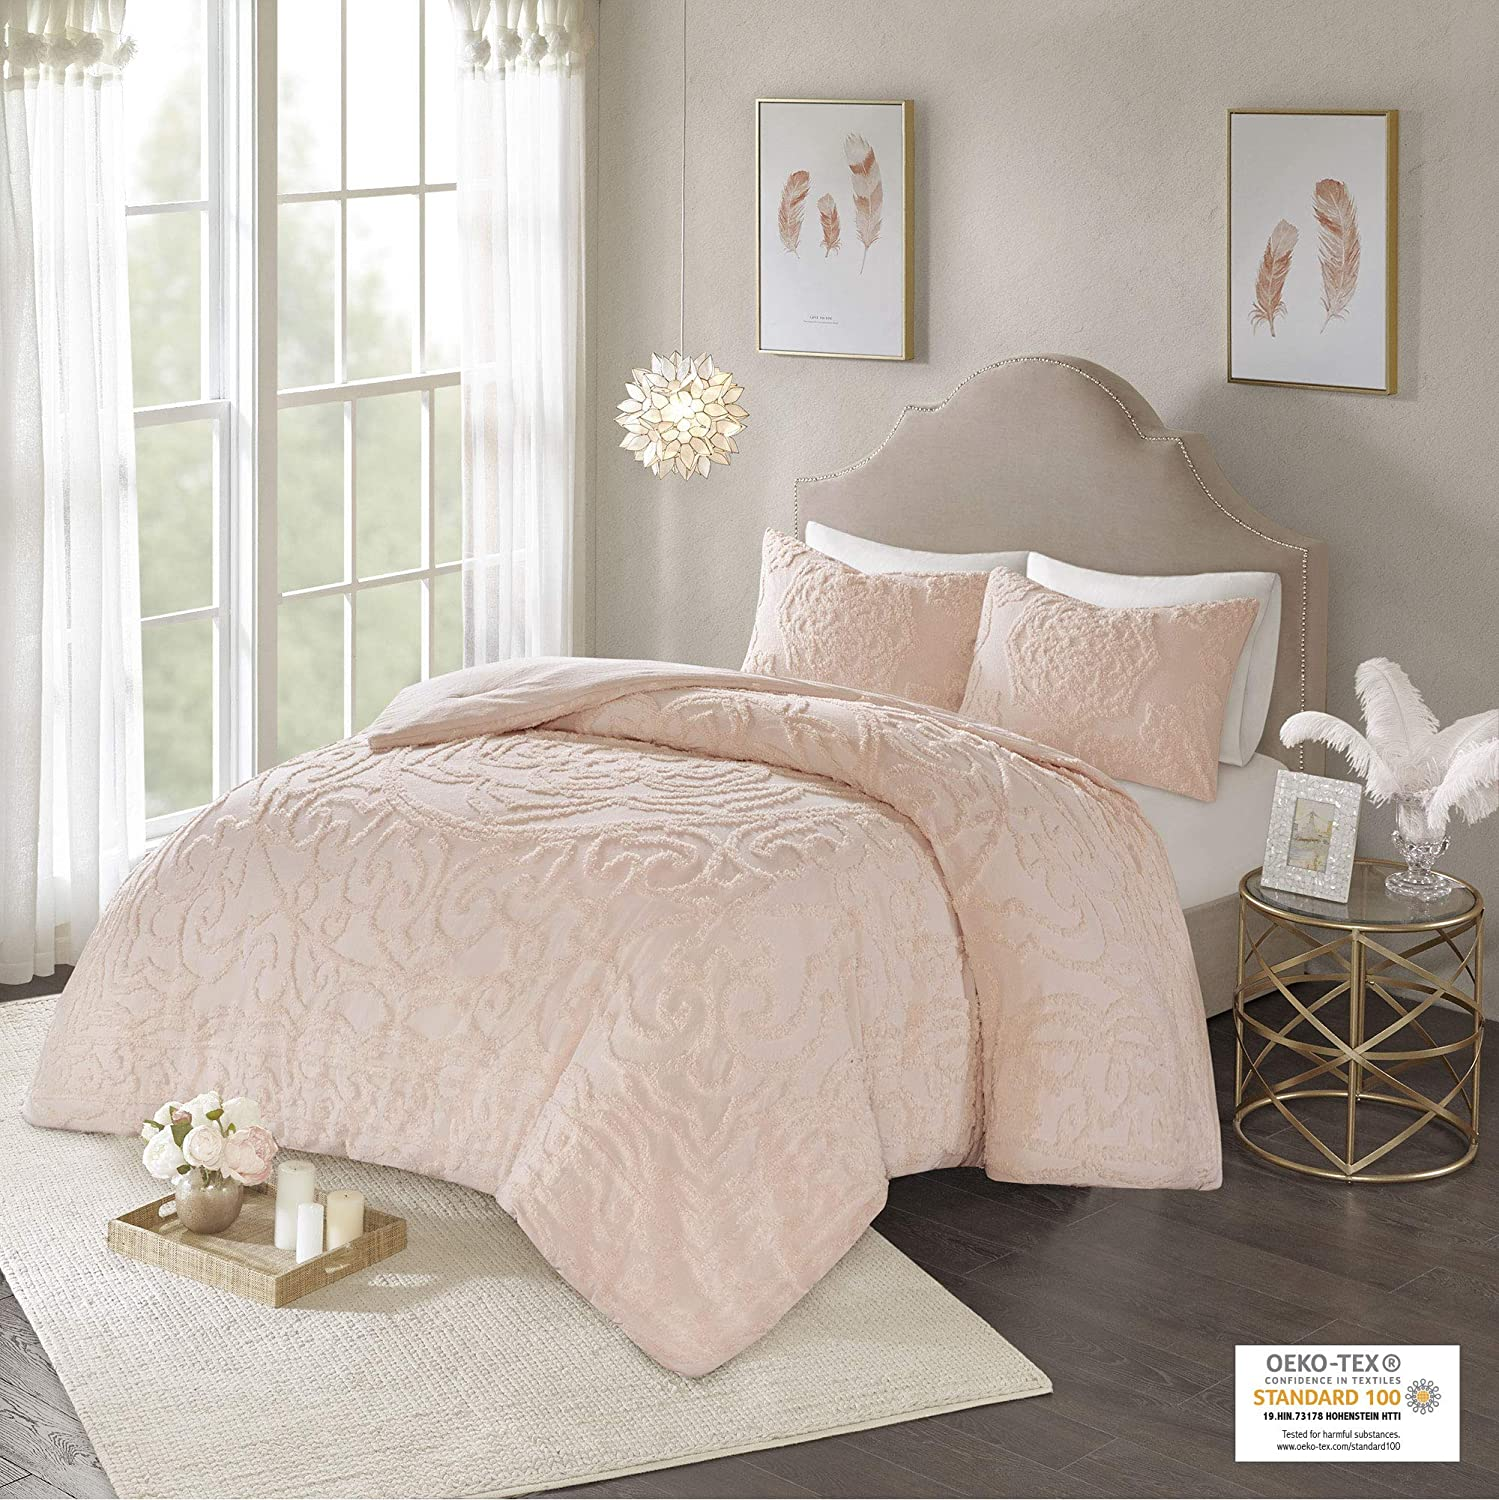 Madison Park Laetitia Shabby Chic All Season Down Alternative Bed Set with Matching Shams, King/Cal King Floral Blush